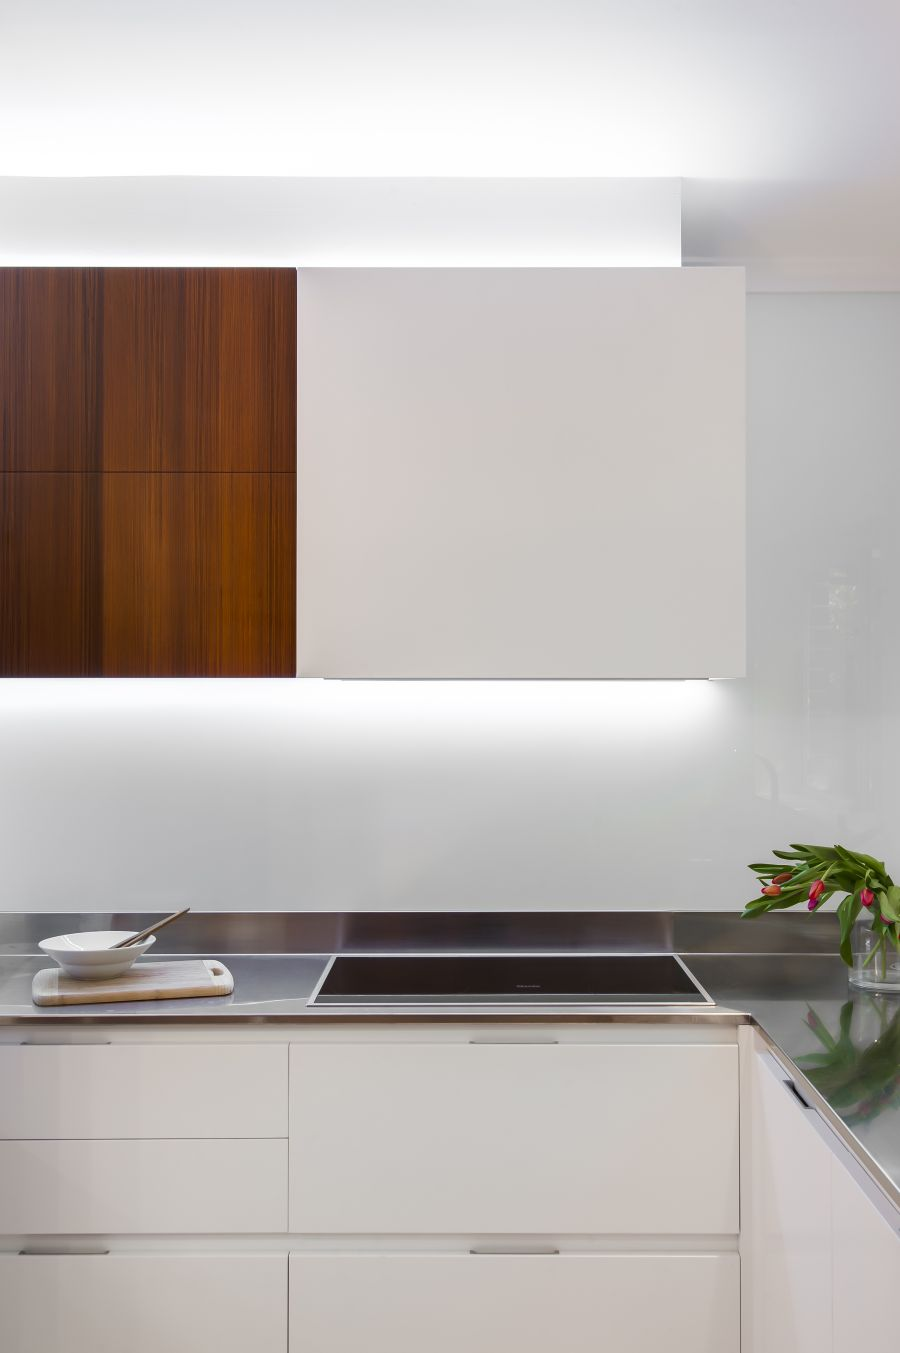 Smart and focussed lighting in the kitchen